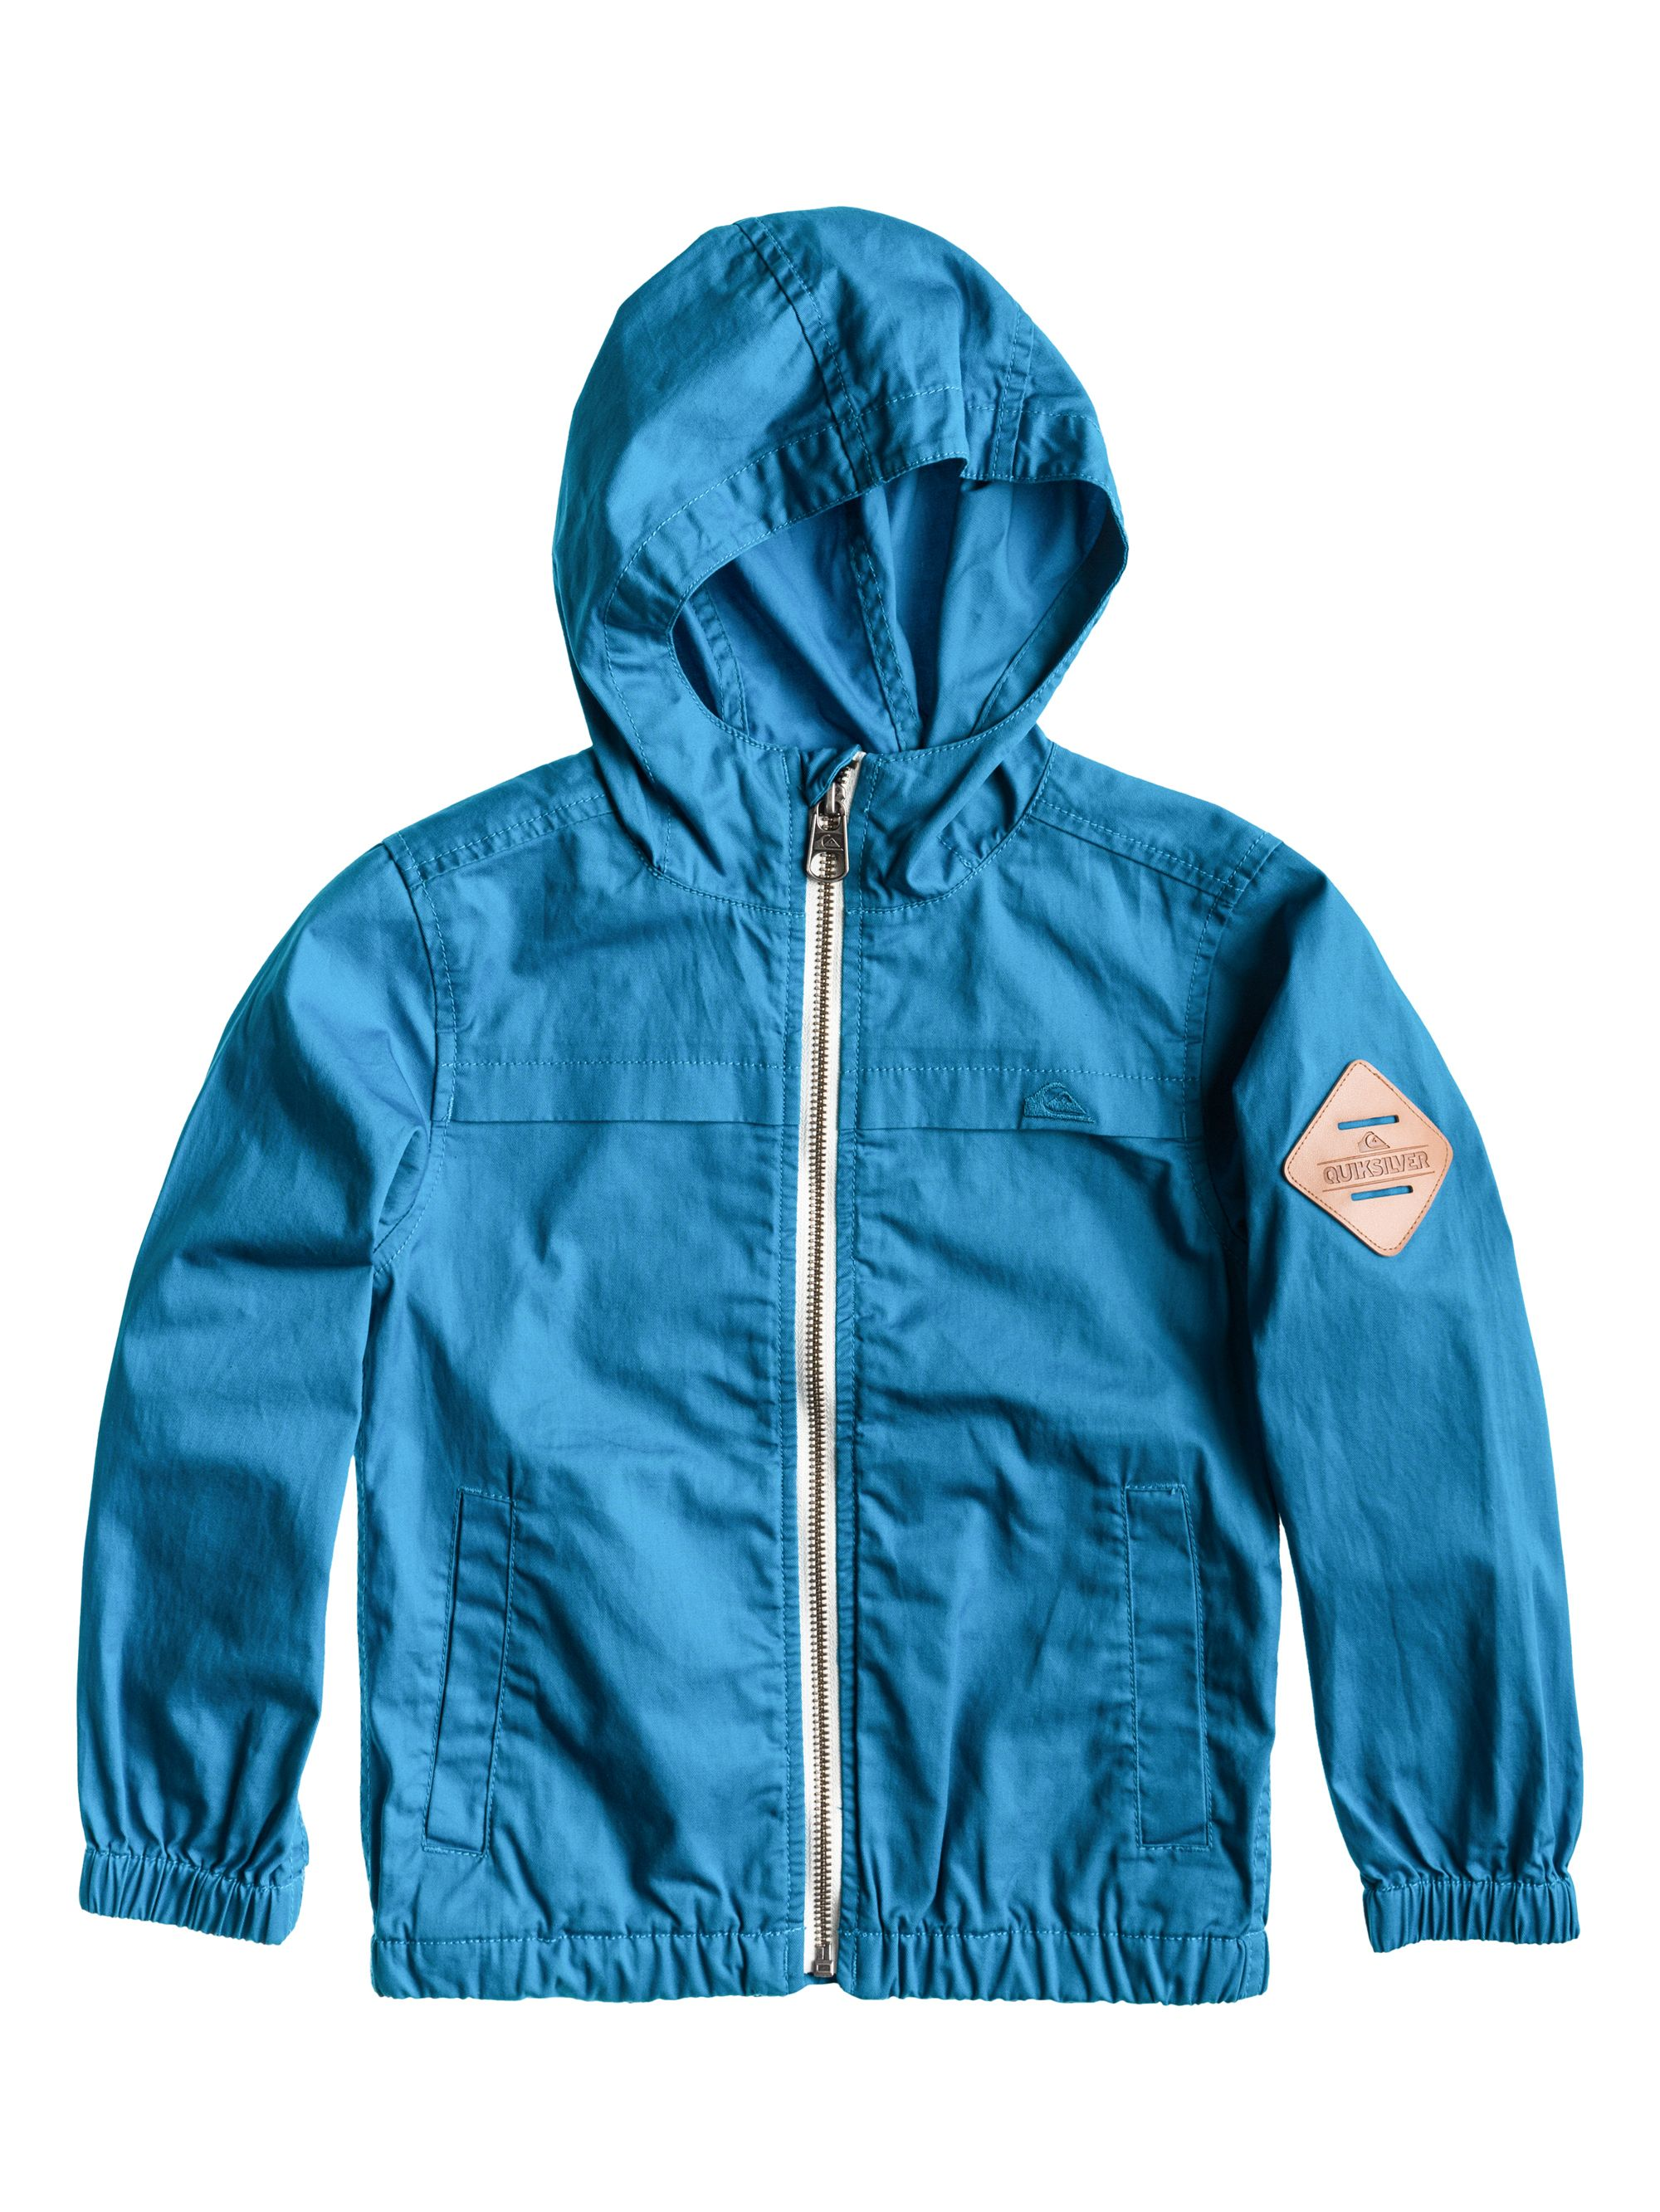 Boys shoreline parka jacket